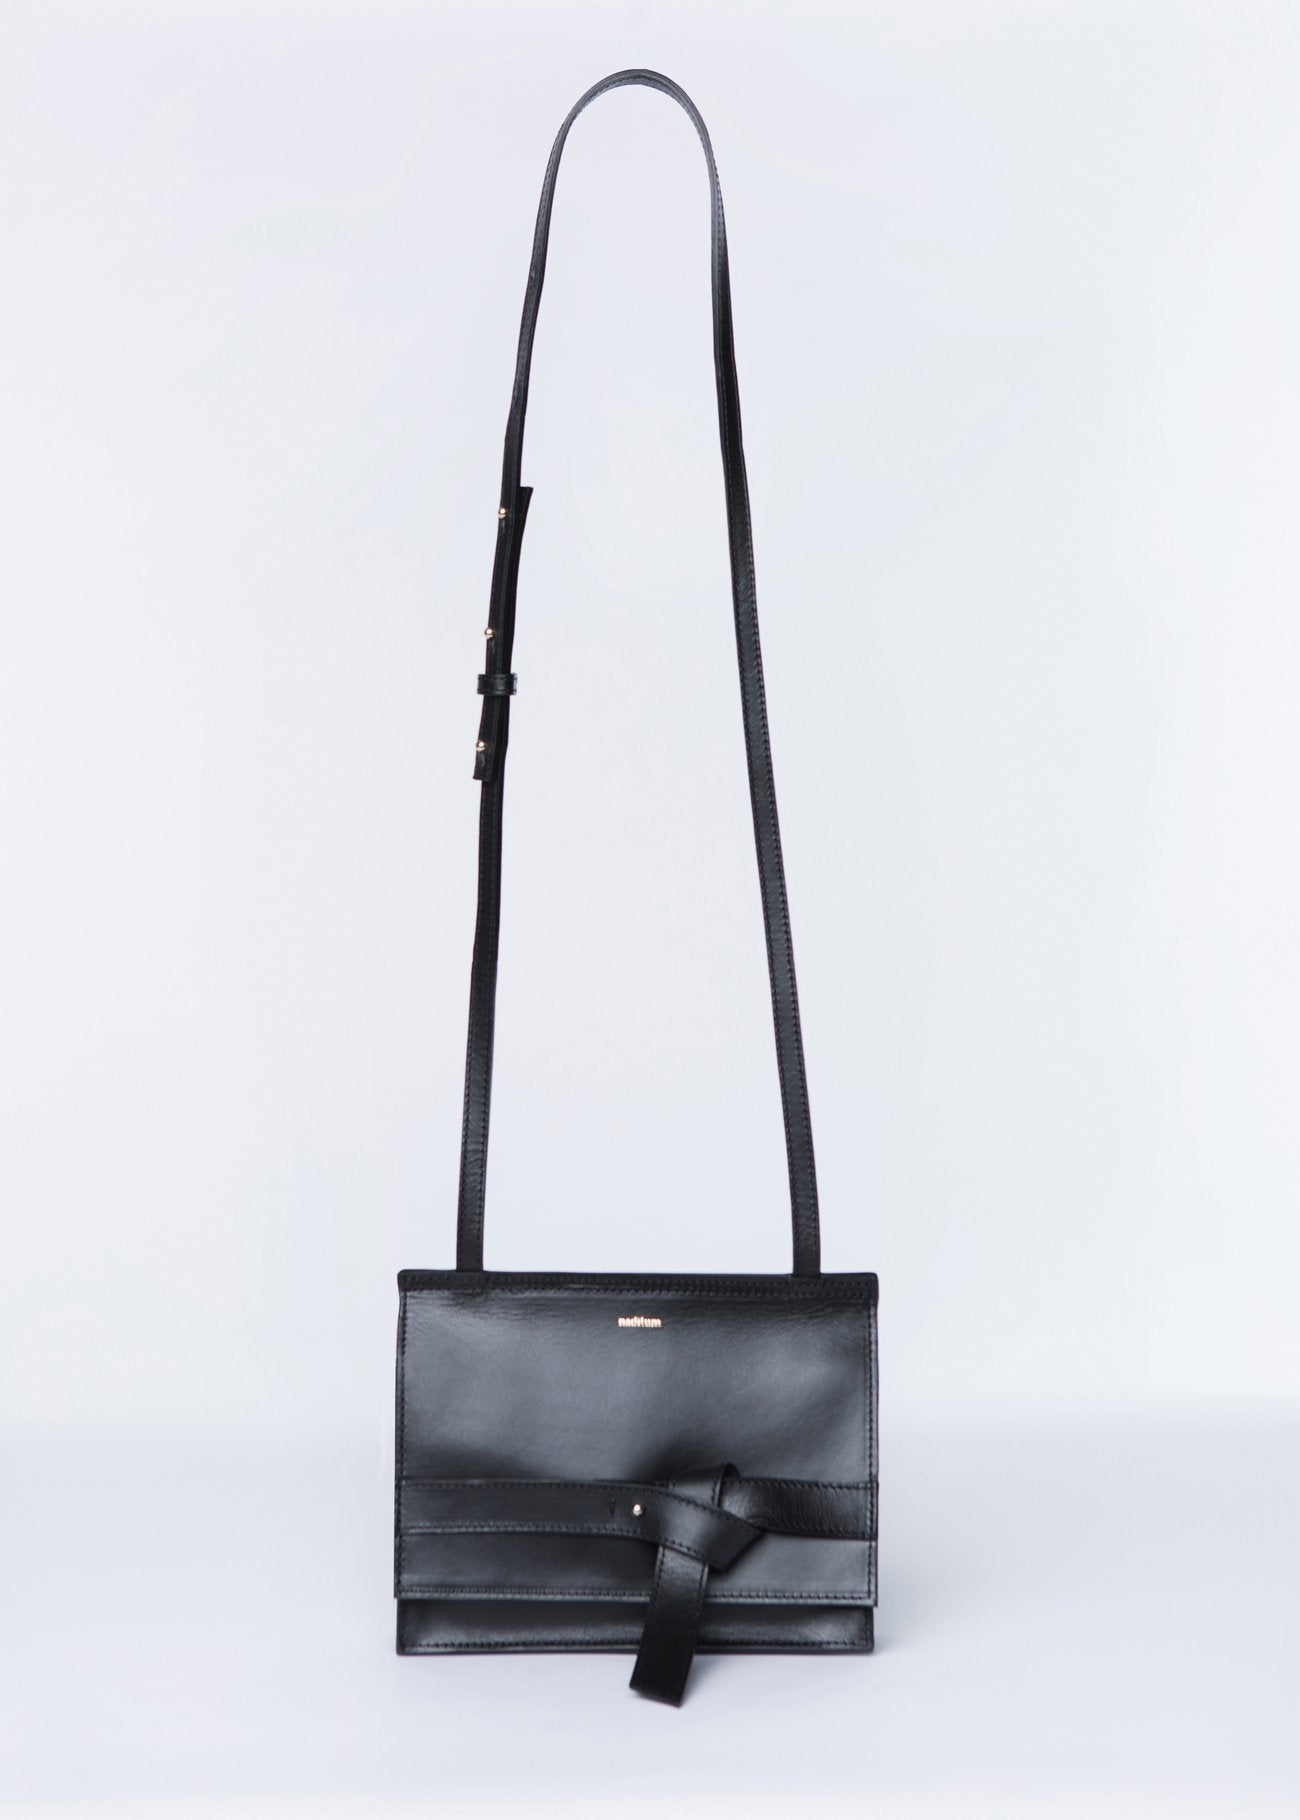 ISHTAR CROSSBODY BAG | BLACK bags from nadītum curated by pu·rist